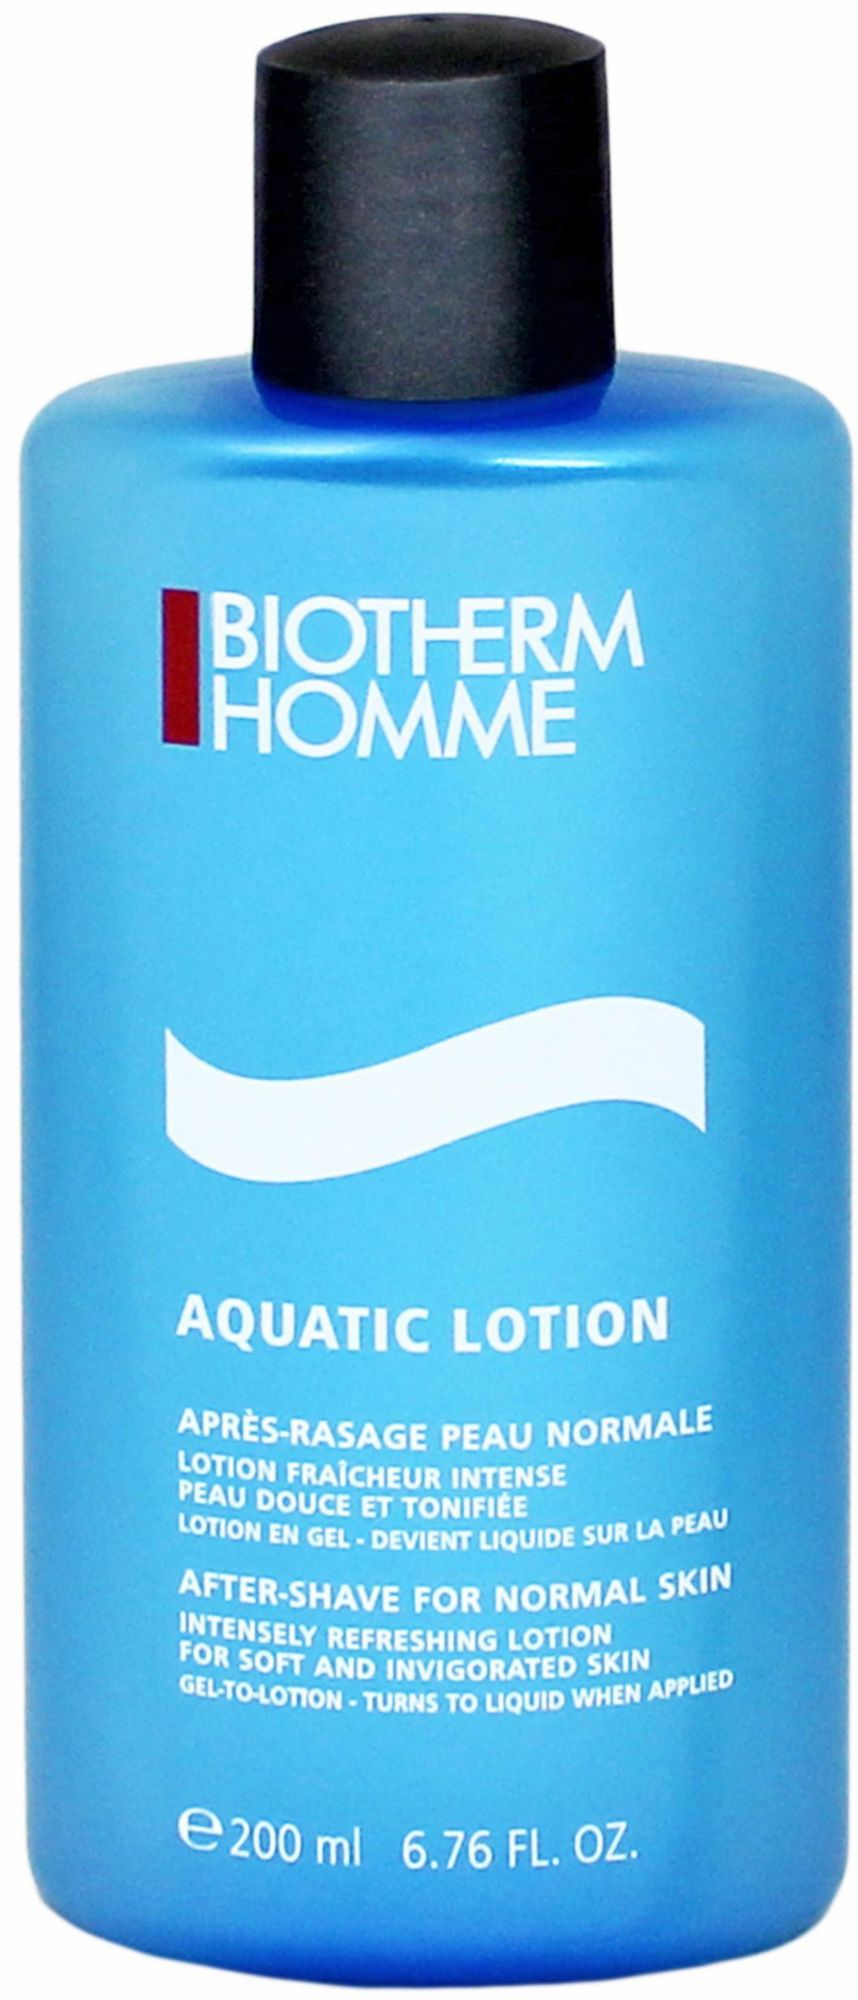 BIOTHERM Biotherm Homme, »Aquatic Lotion«, Aftershave